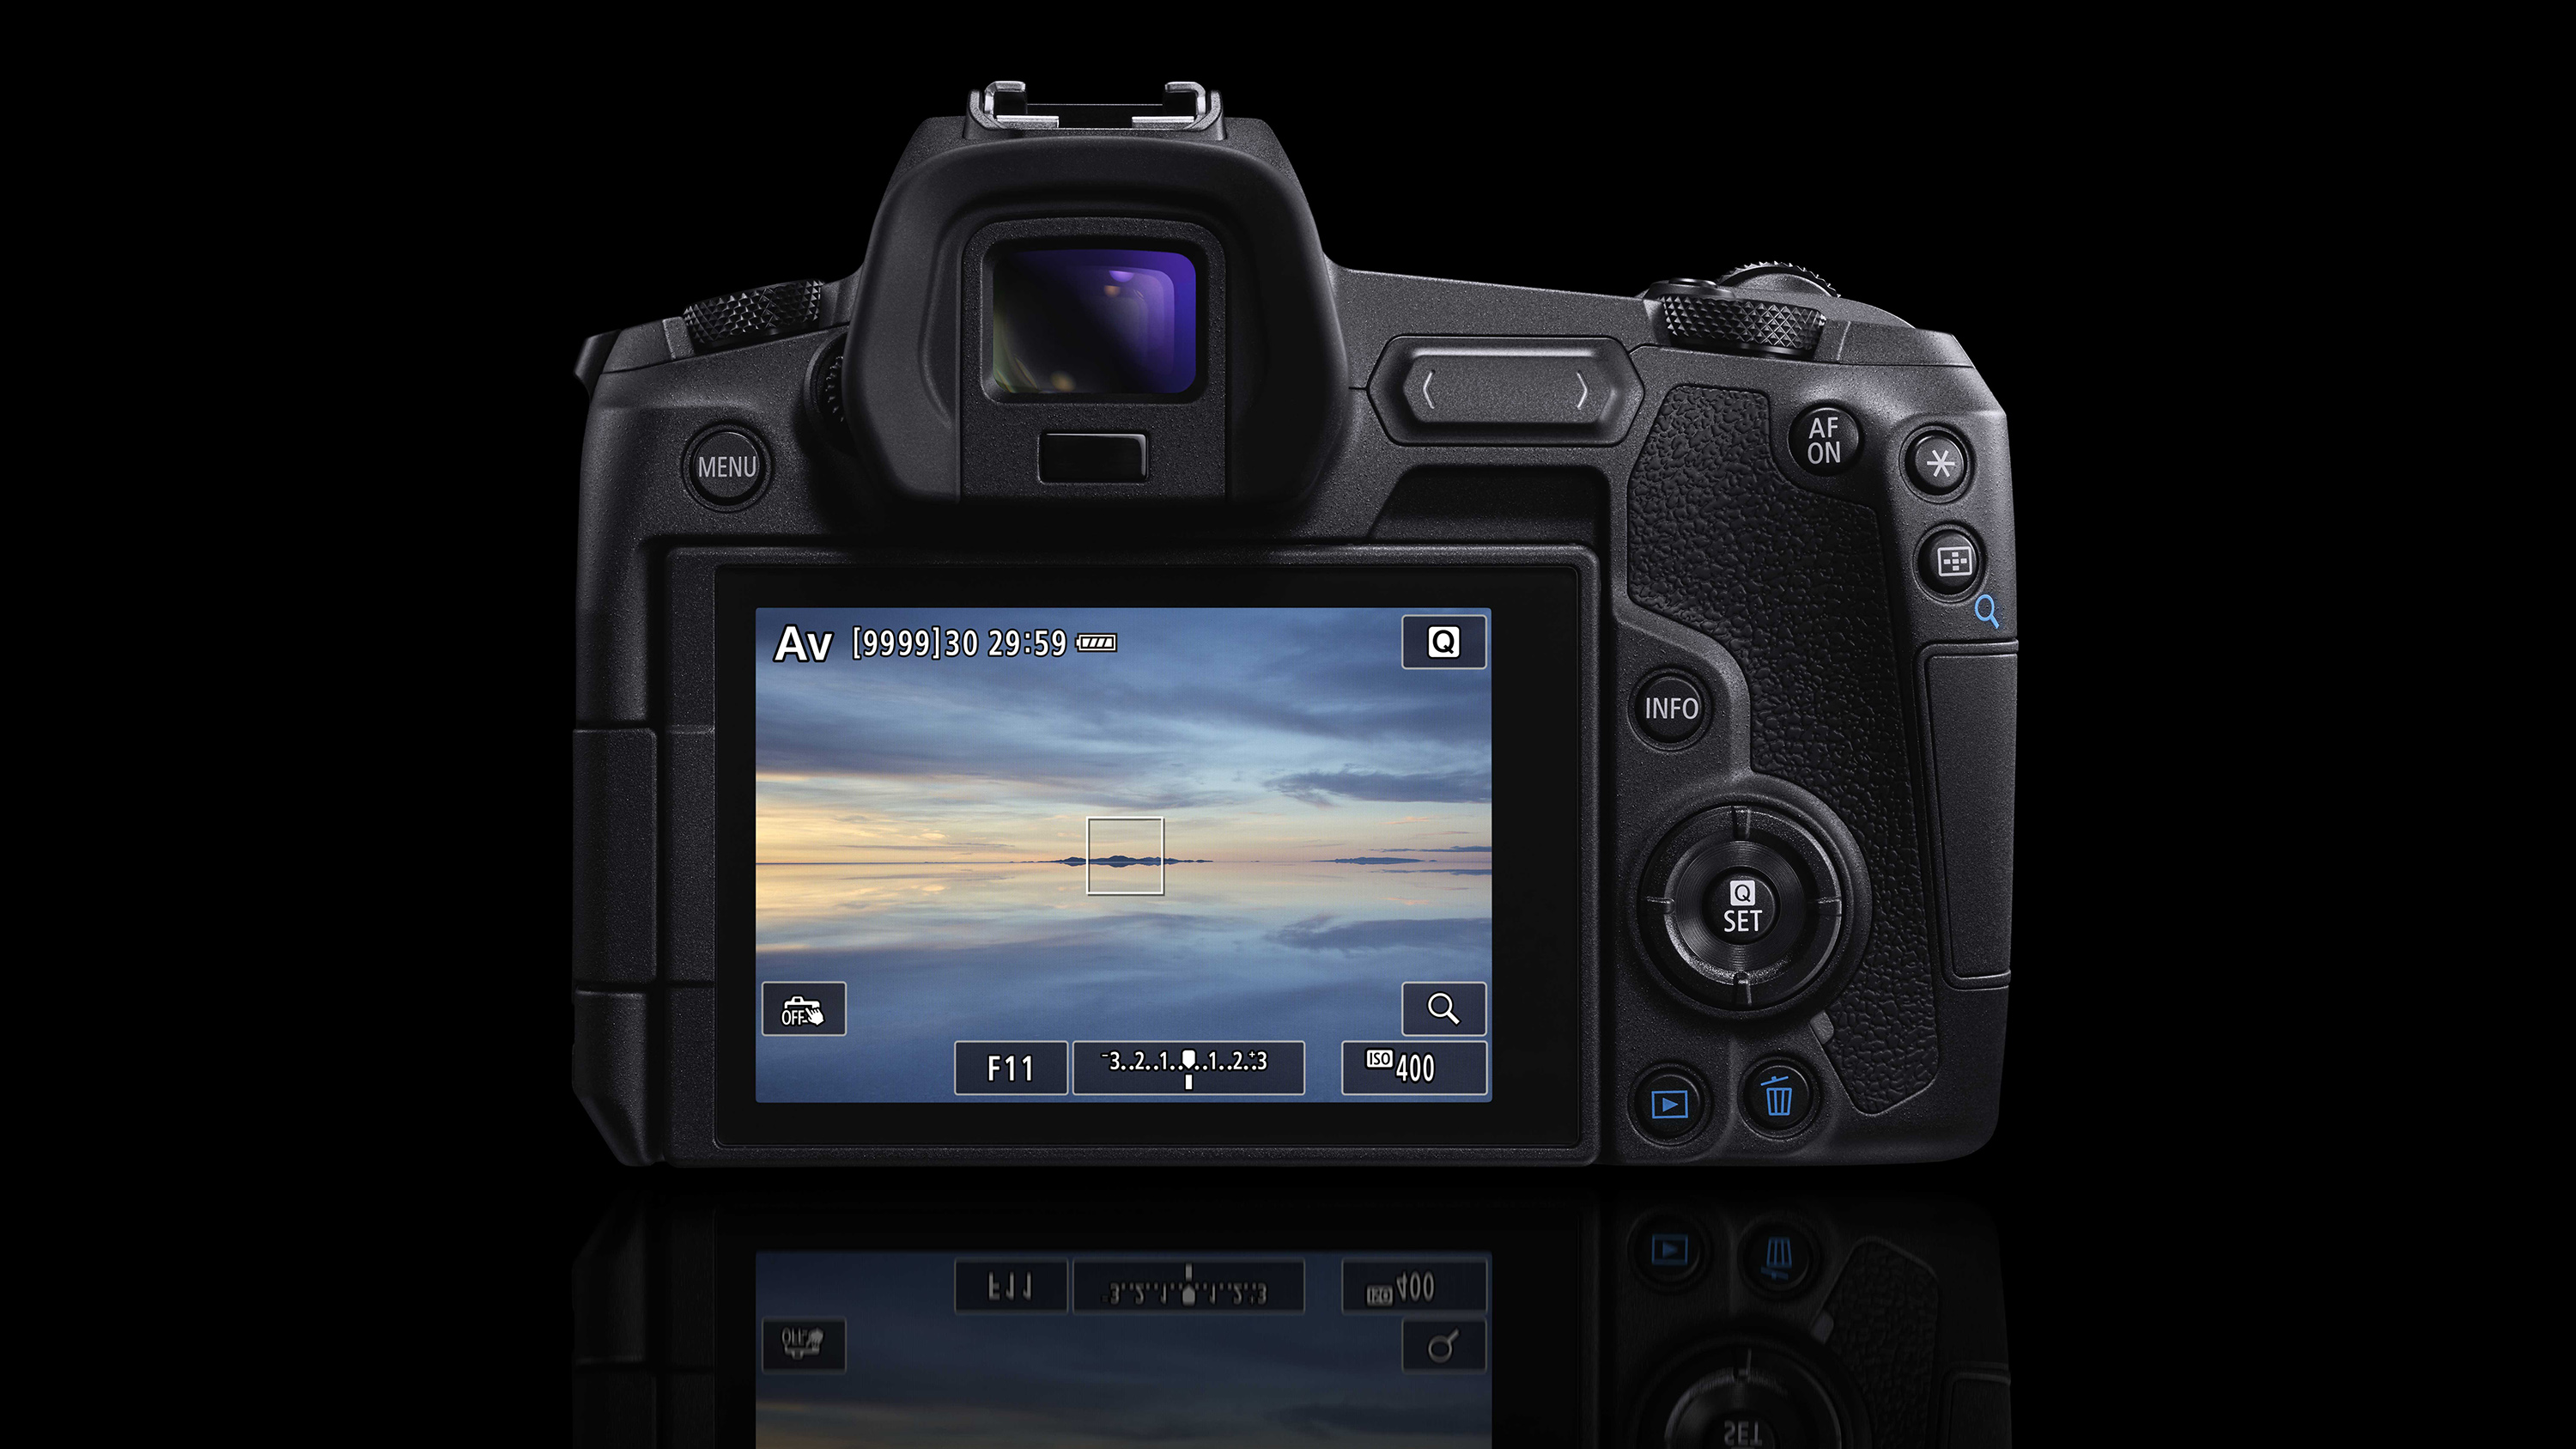 Rumors growing that Canon has a 100MP EOS R with IBIS in the